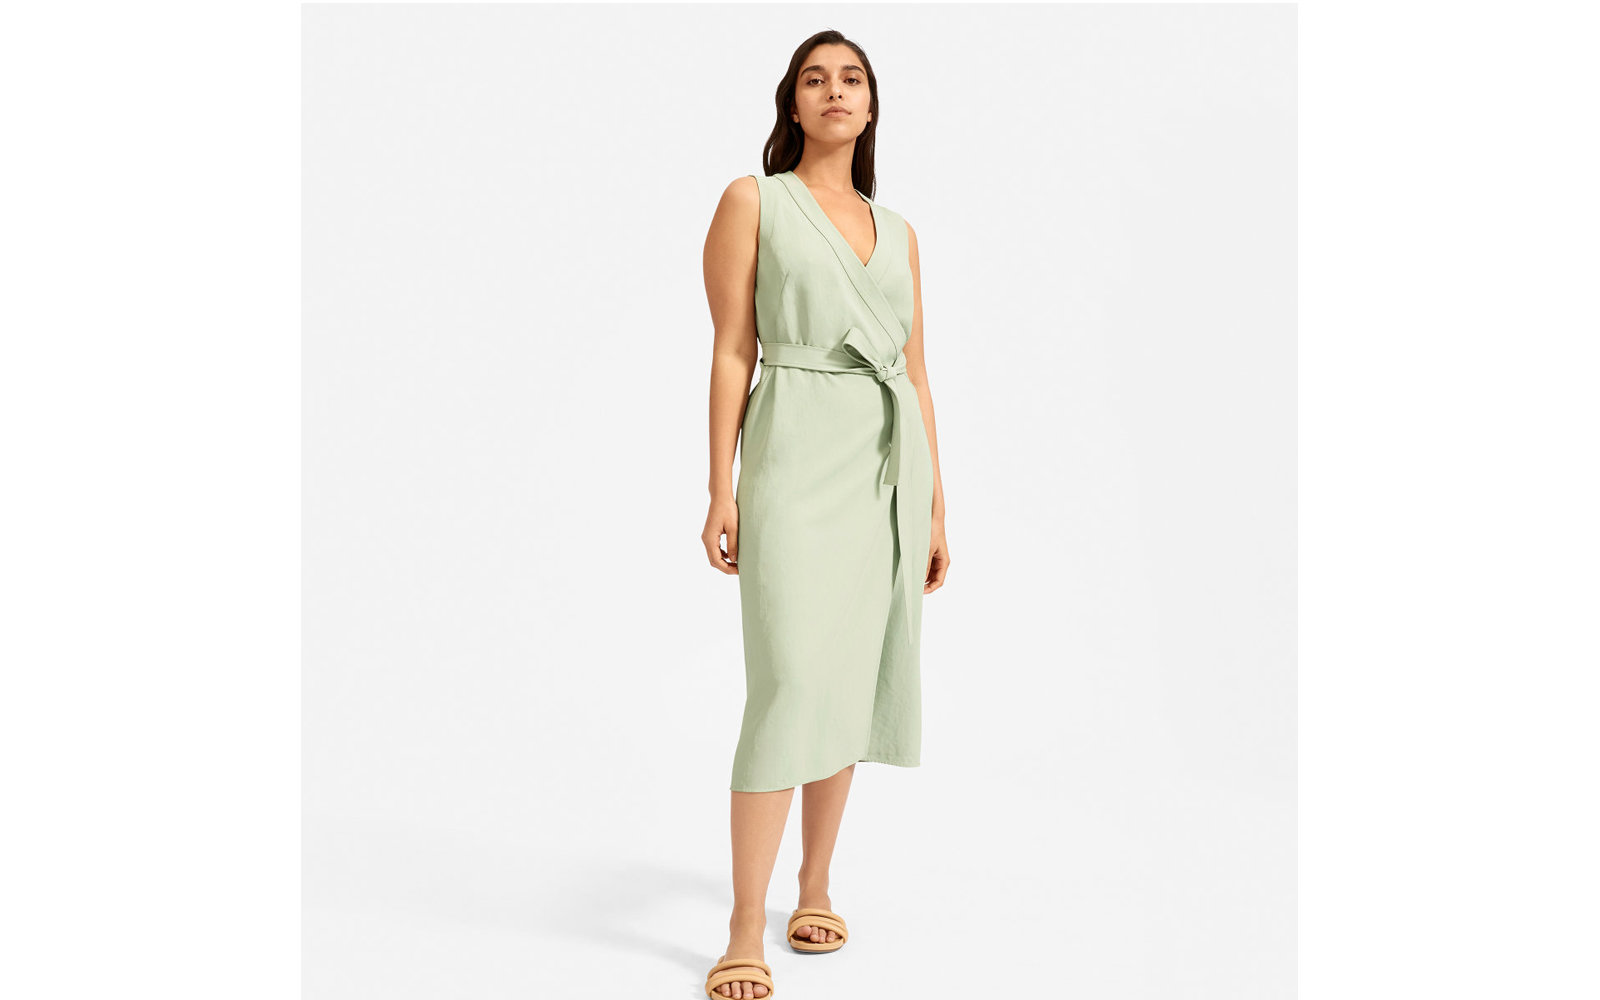 The Japanese GoWeave Sleeveless Wrap Dress in Mint Green